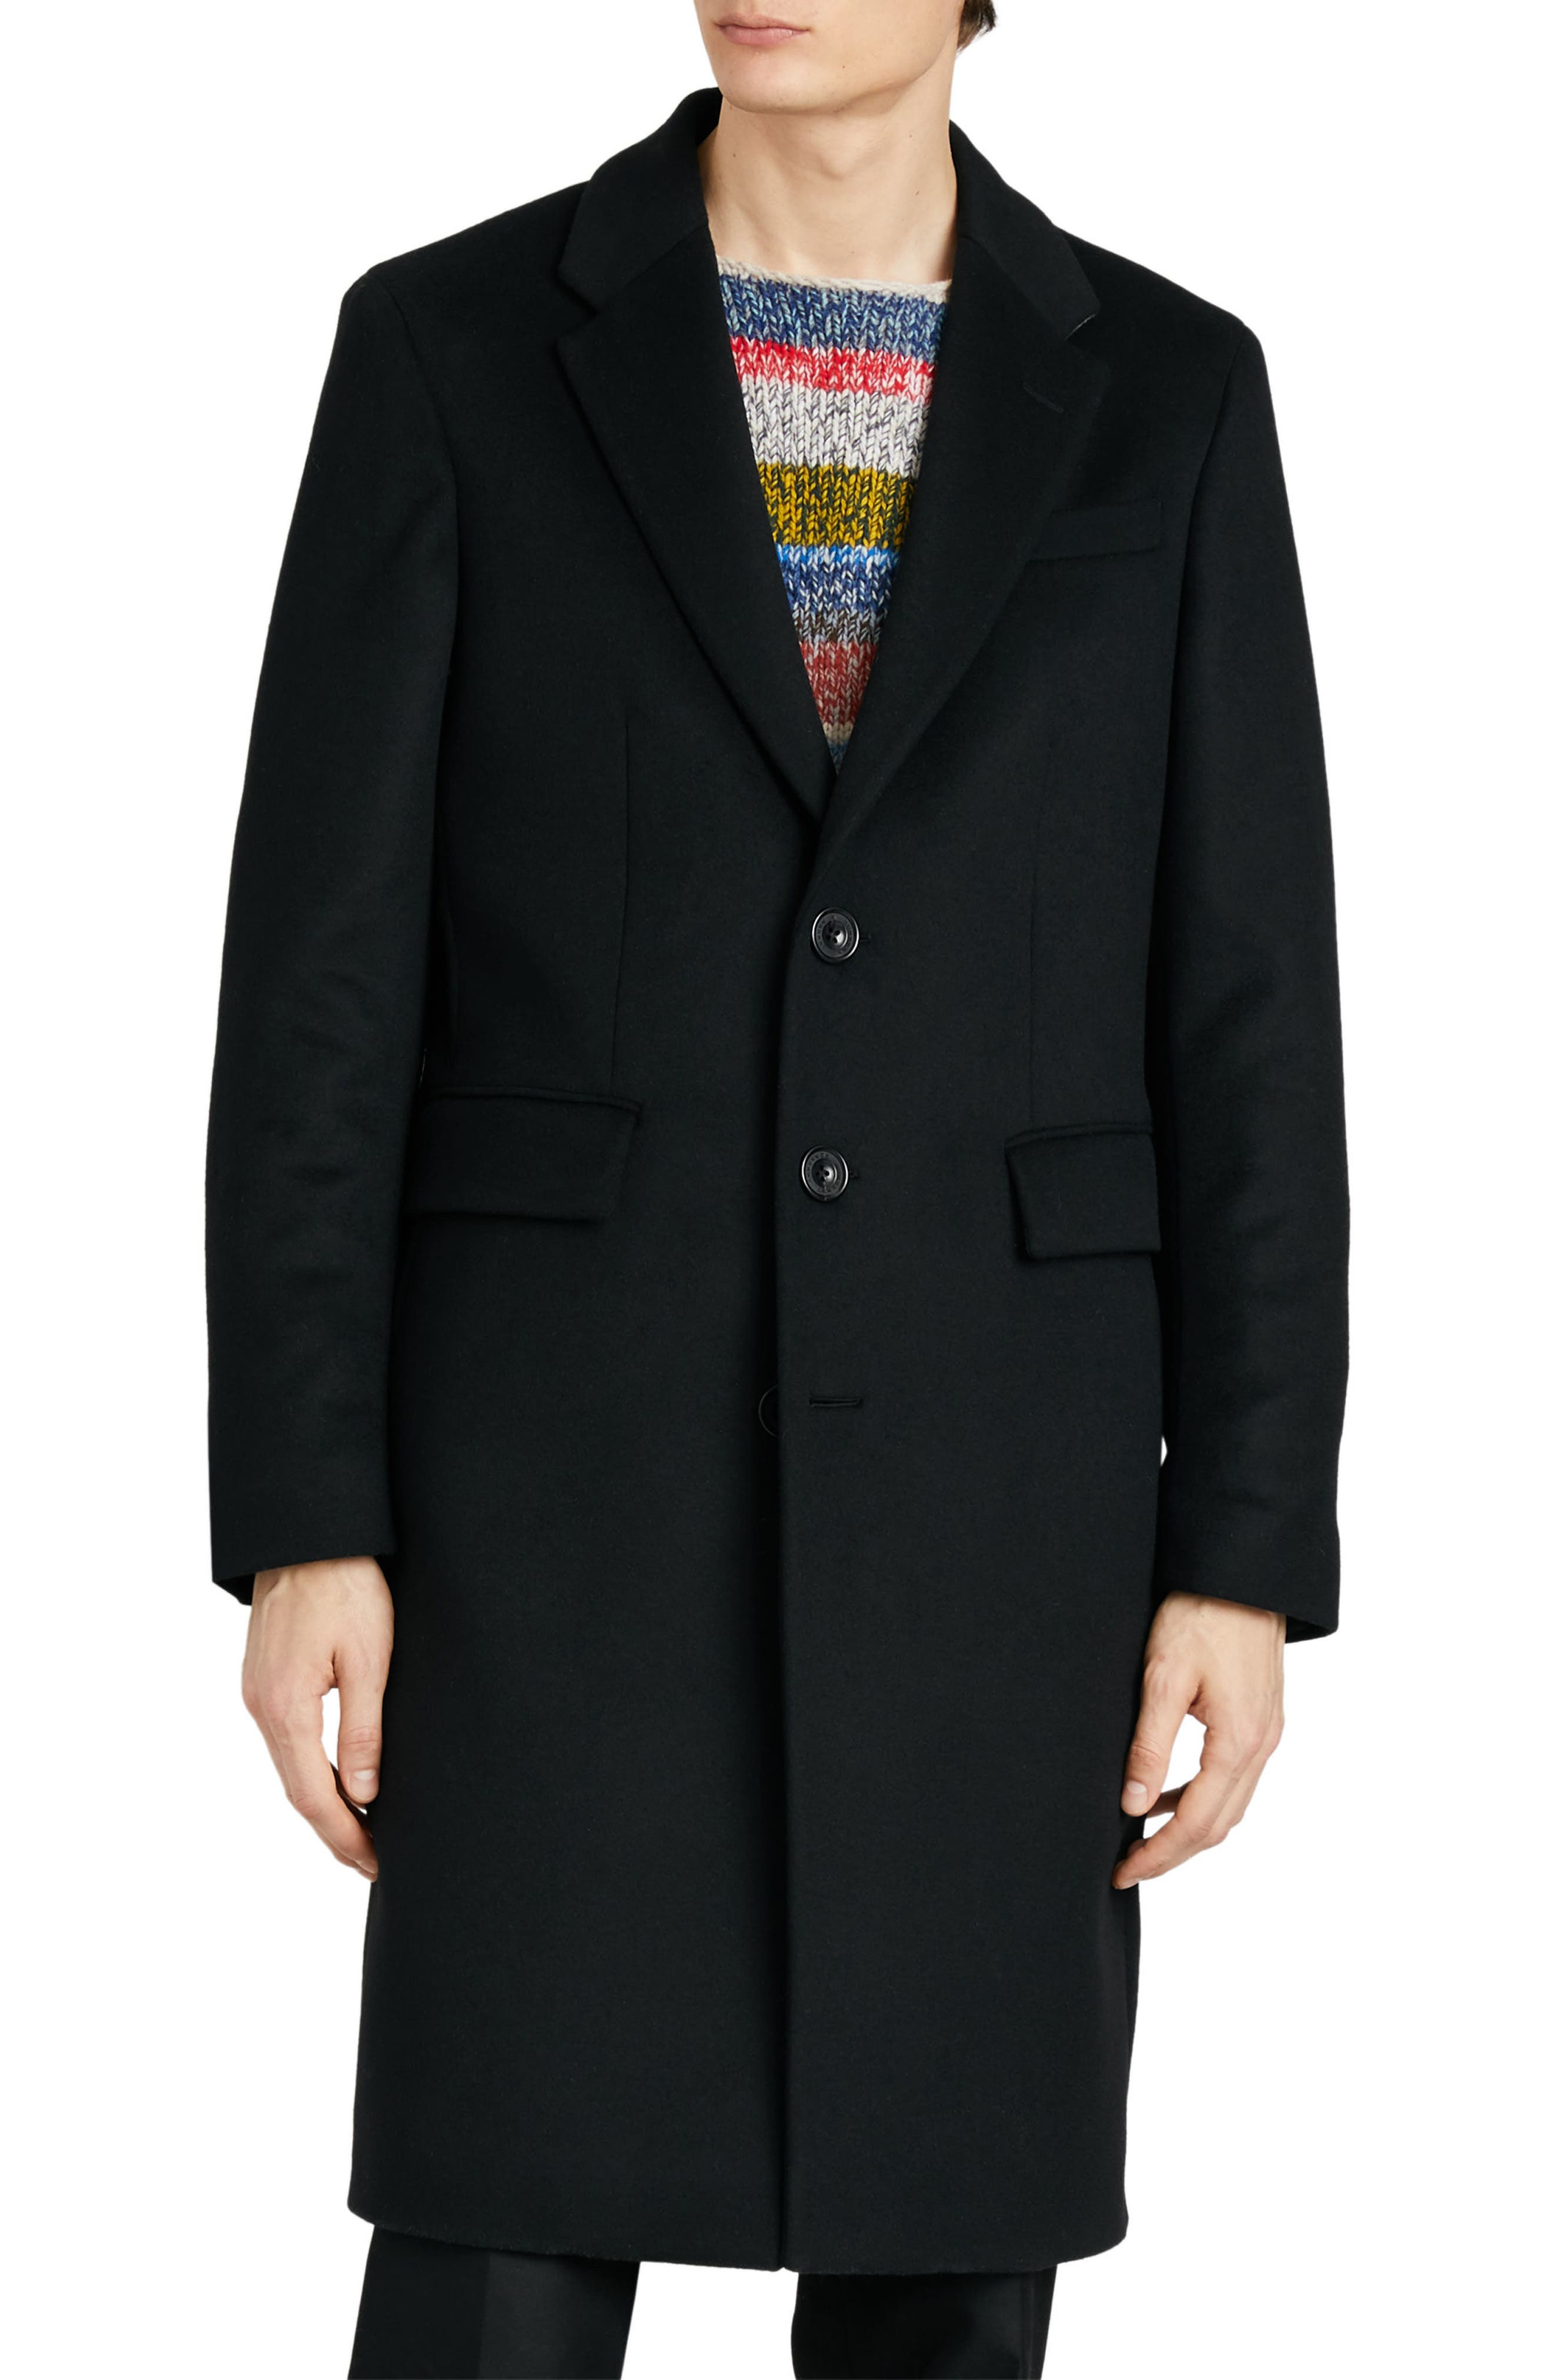 BURBERRY,                             Halesowen Wool and Cashmere Overcoat,                             Main thumbnail 1, color,                             001